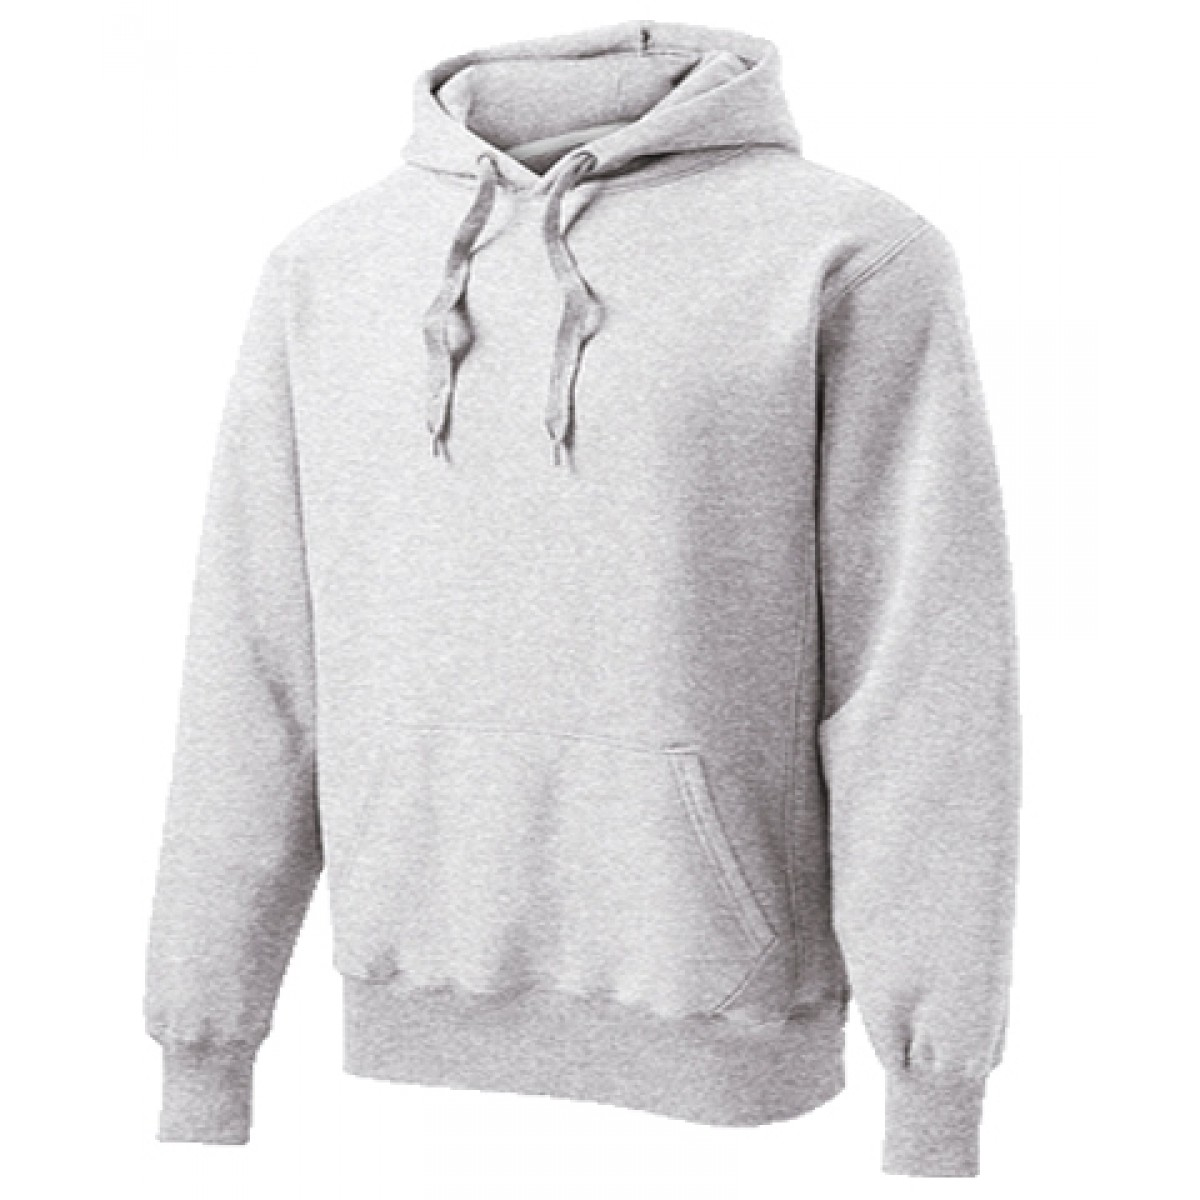 Hooded Sweatshirt 50/50 Heavy Blend Gray-Gray -L